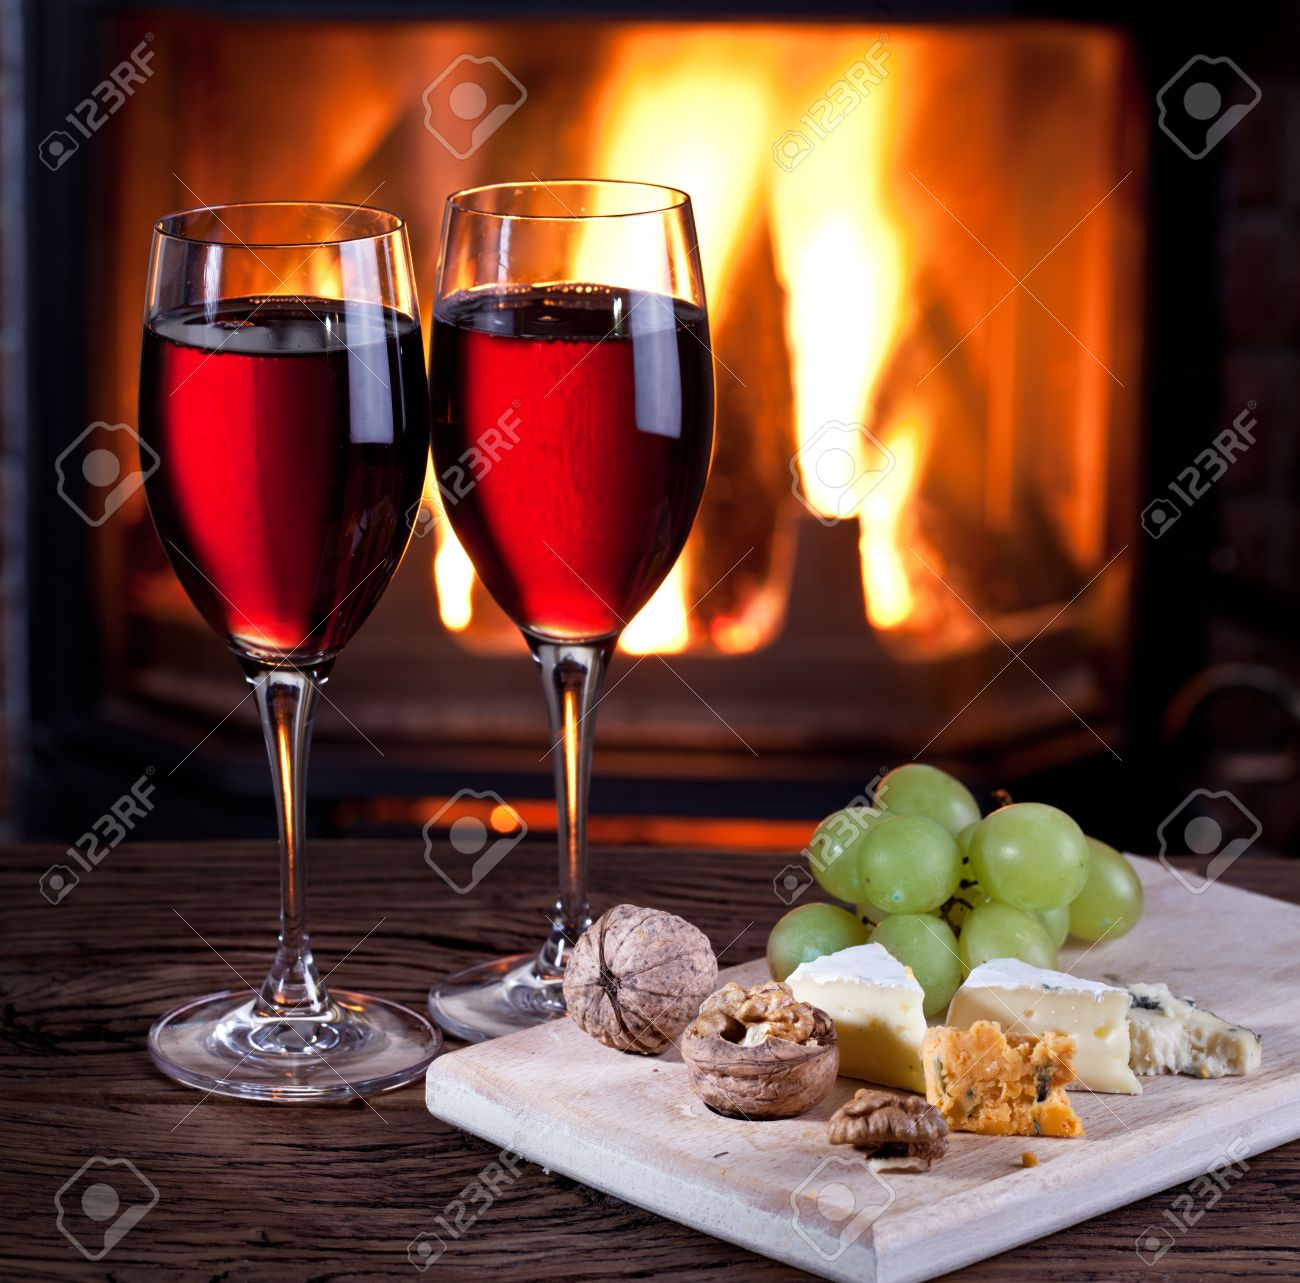 romantic still life near the fireplace glasses of wine cheese